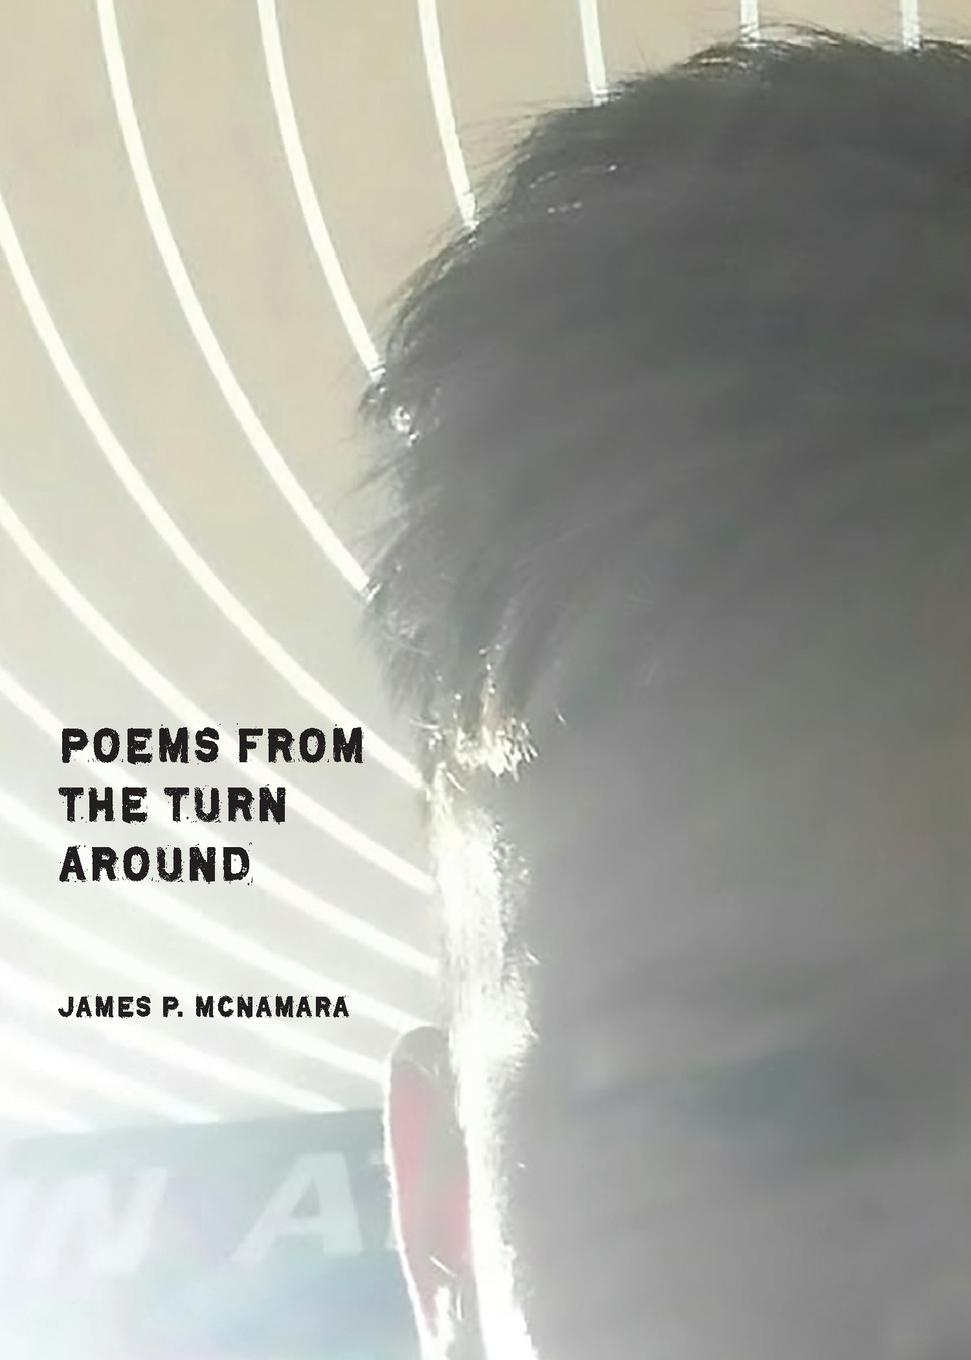 James P. McNamara Poems from the Turn Around